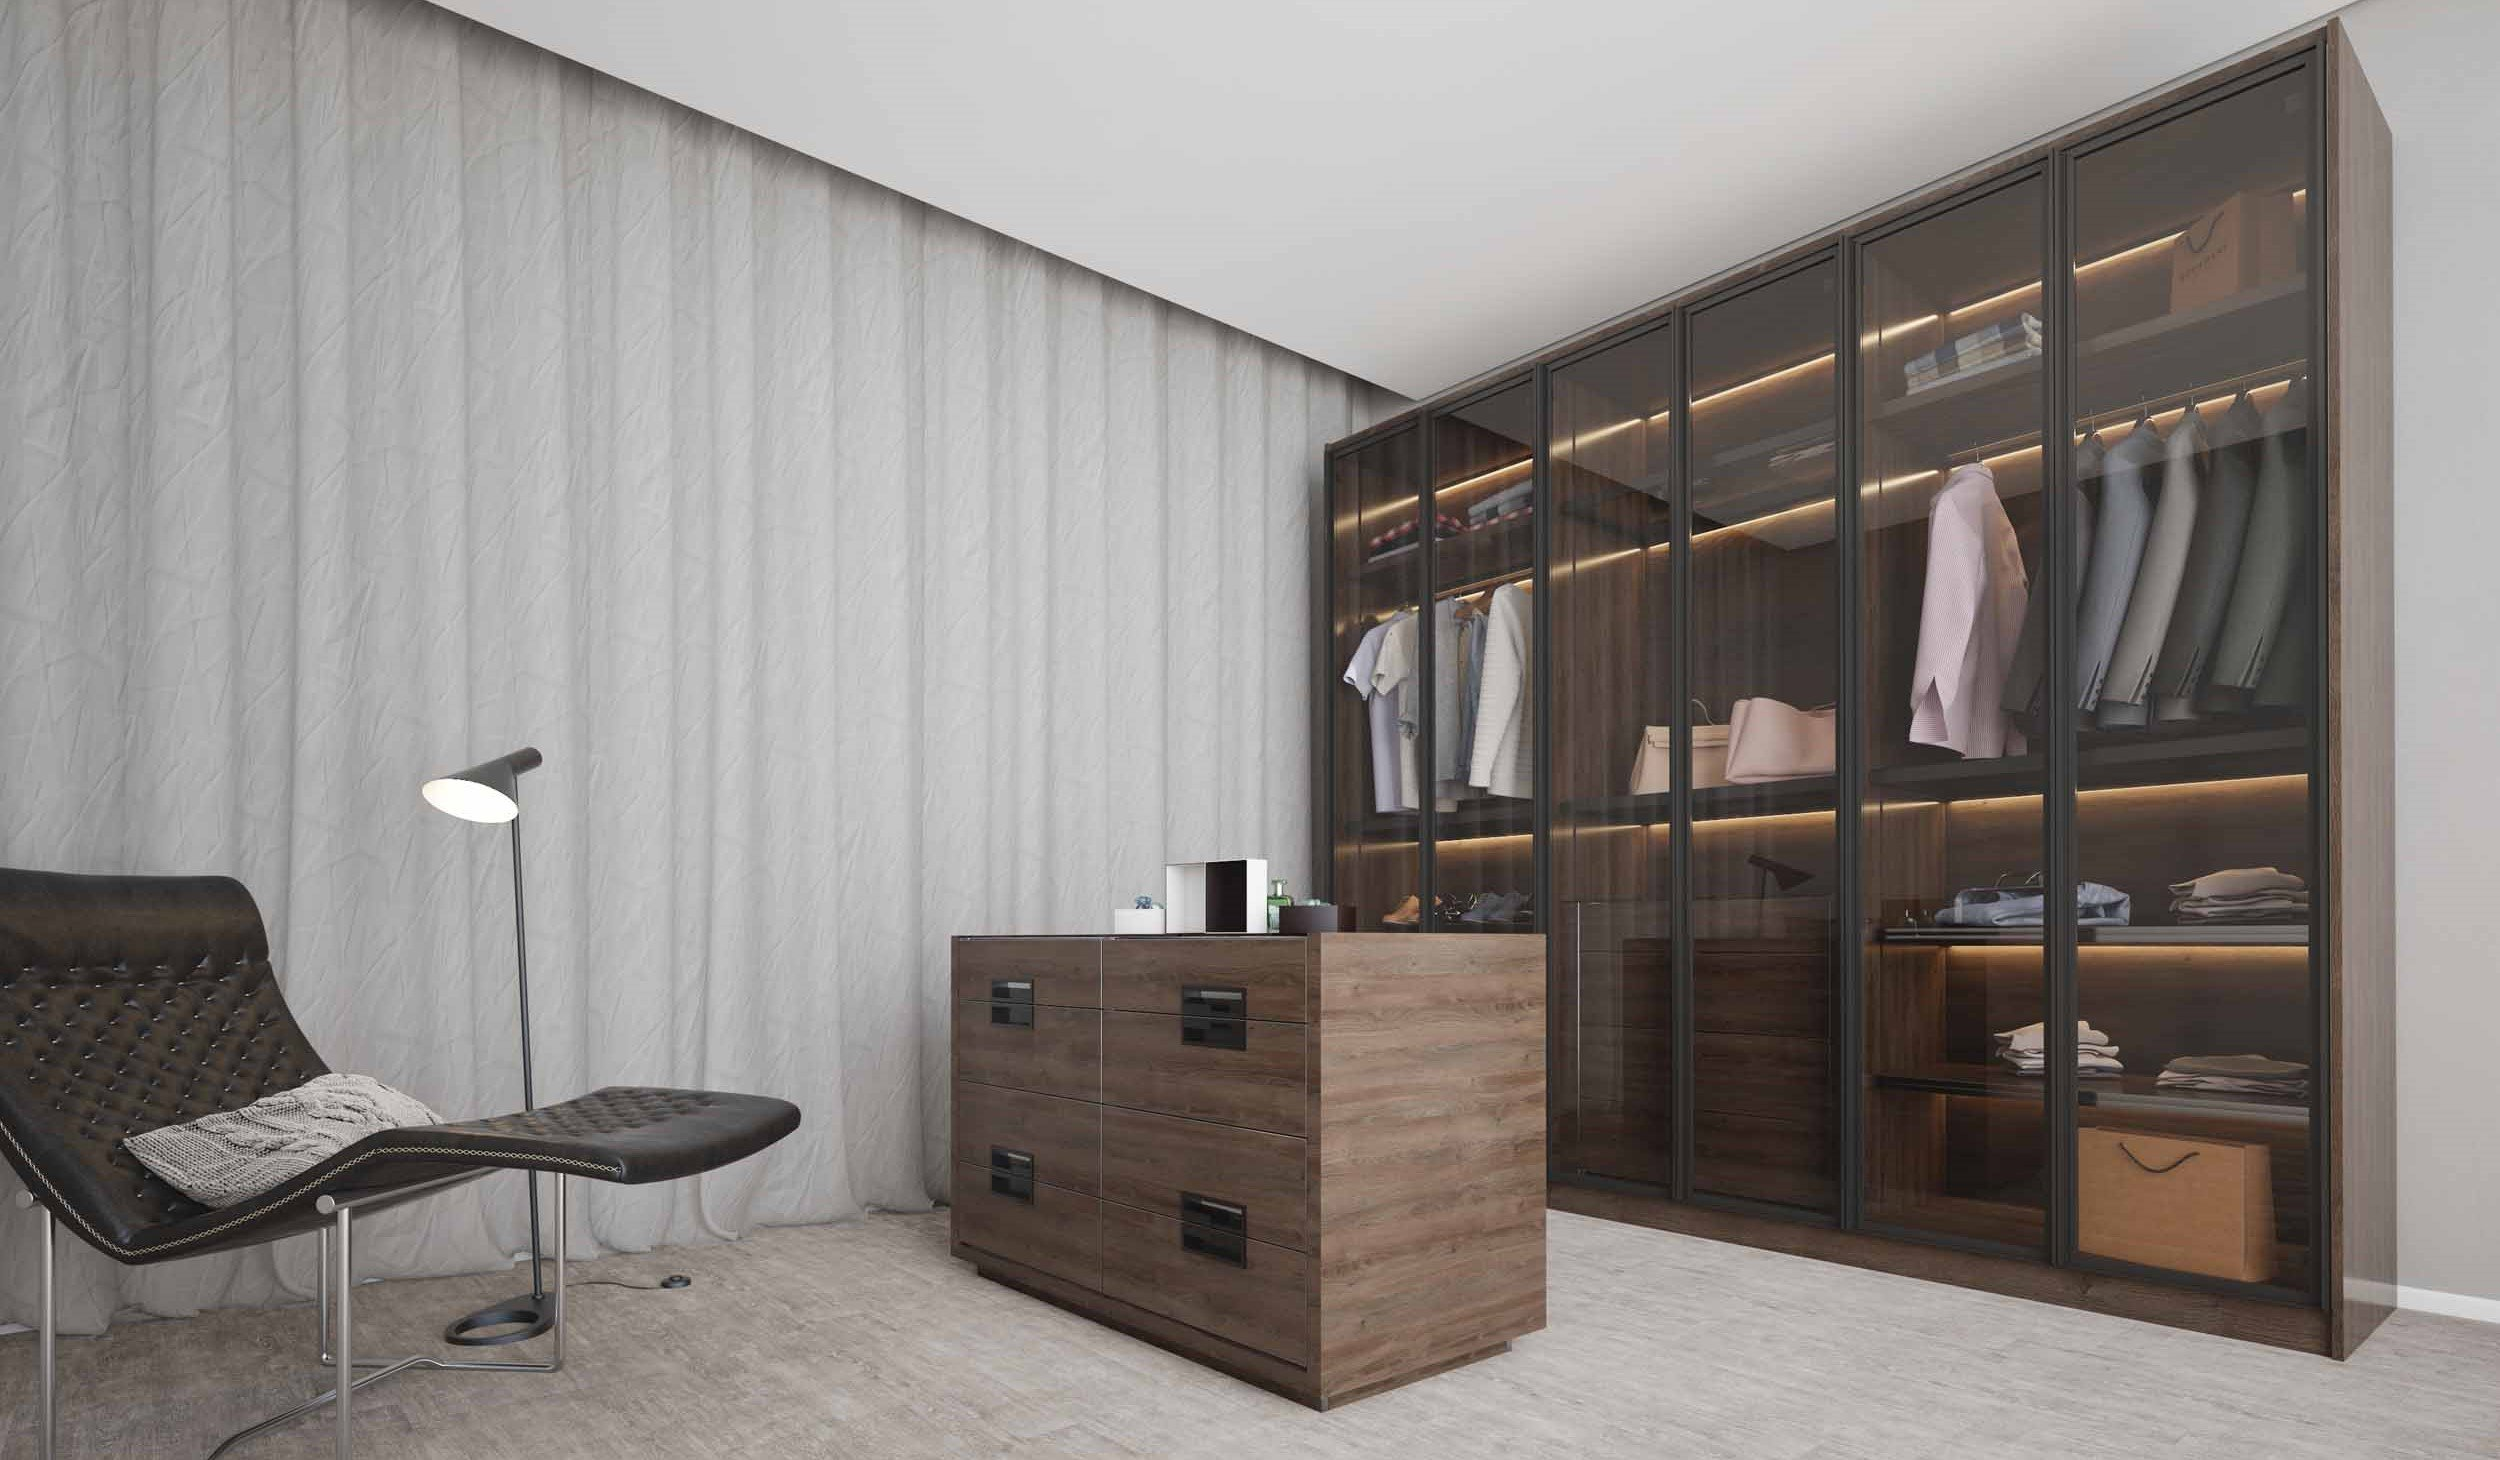 Linear Glass Fitted Wardrobe With Chest of Drawers With Woodgrain Finish